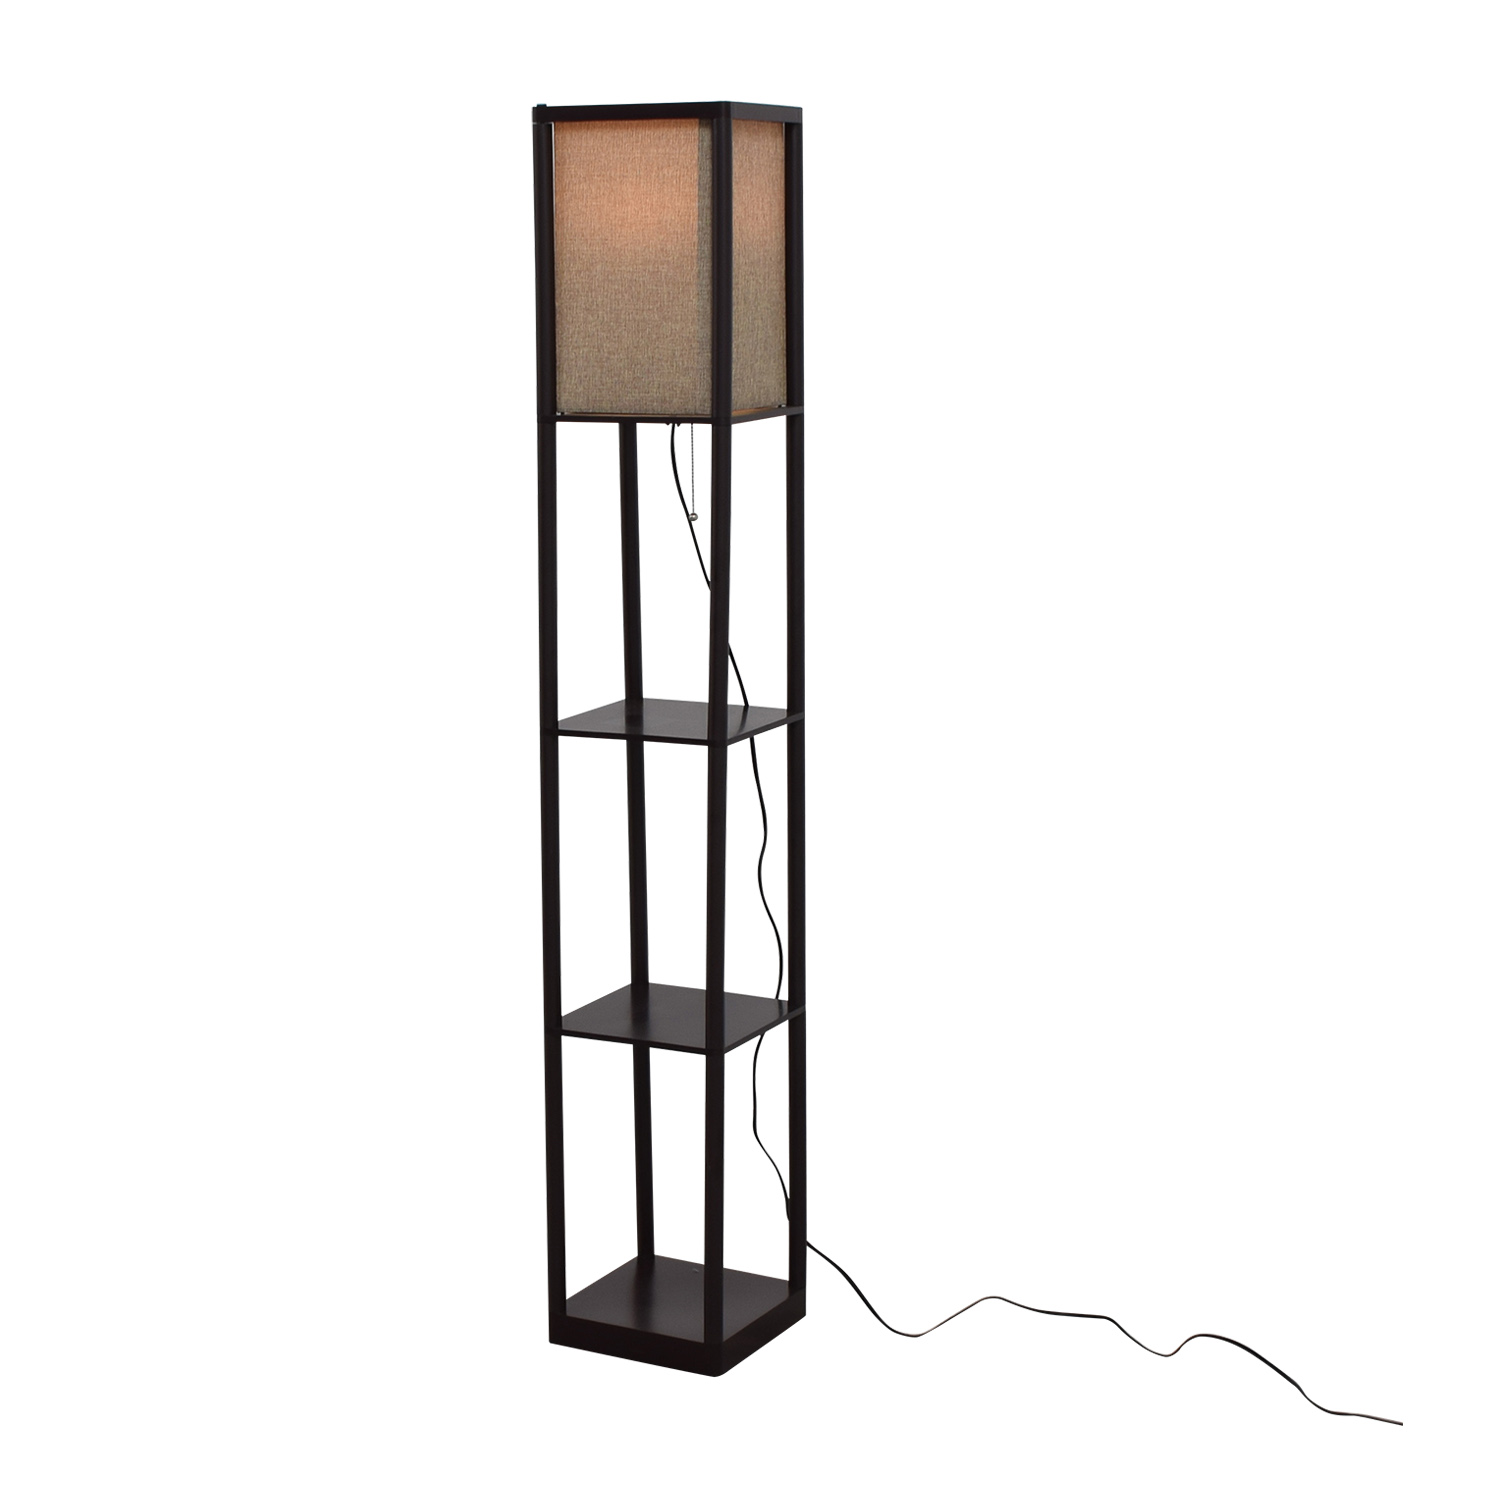 71 OFF Walmart Walmart Tripod Floor Lamp With Accordion